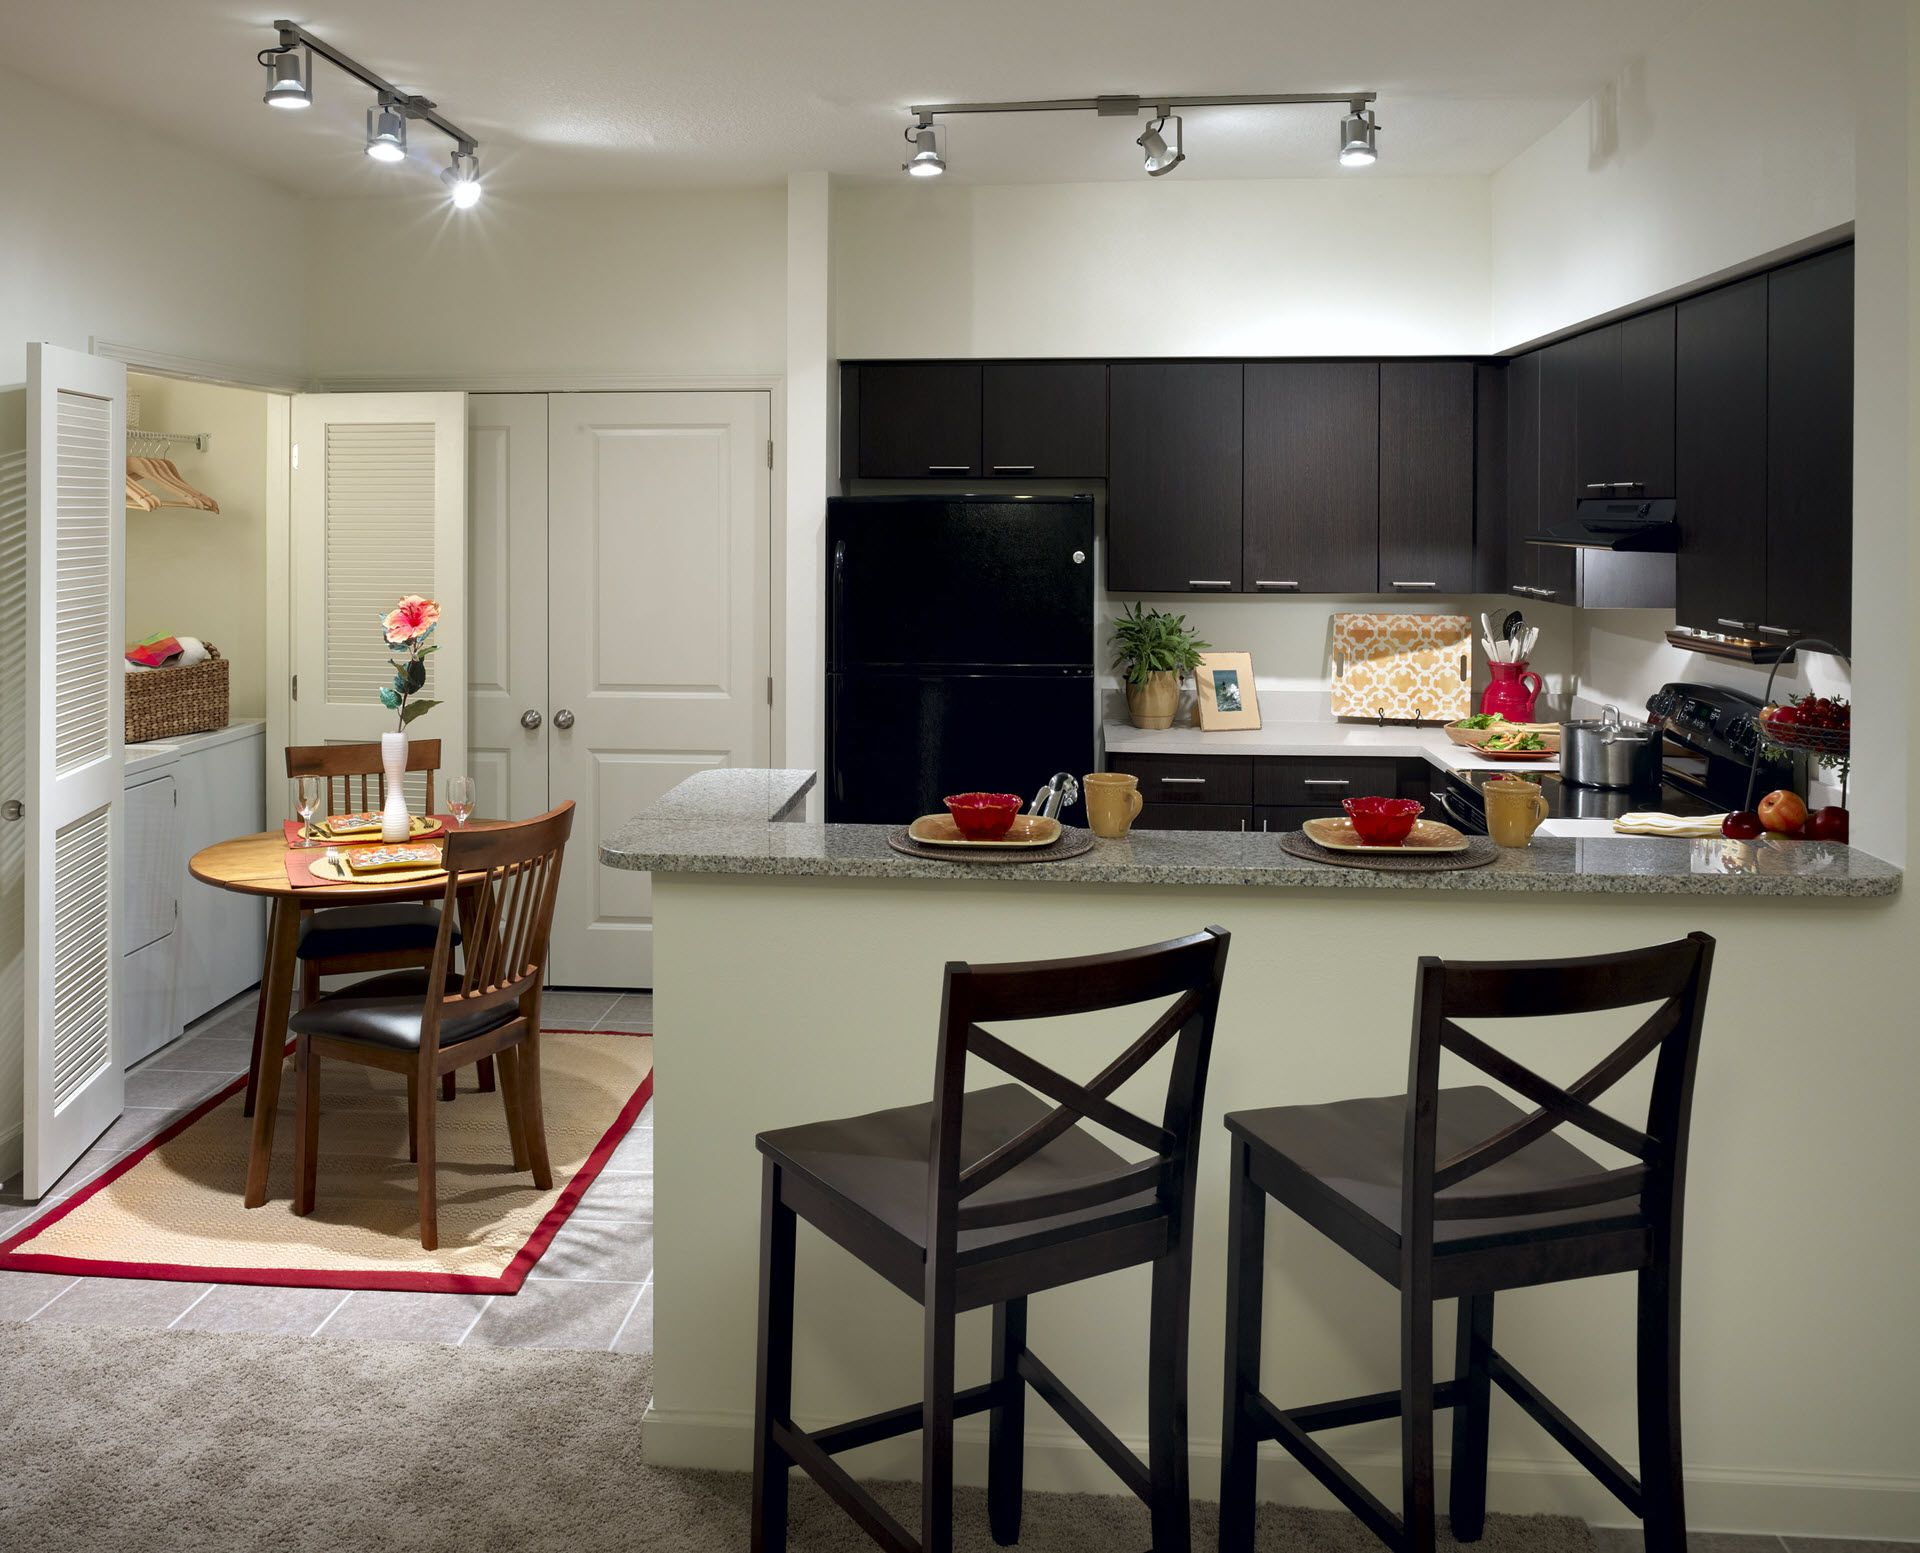 Apartment kitchen with black appliances and bar seating